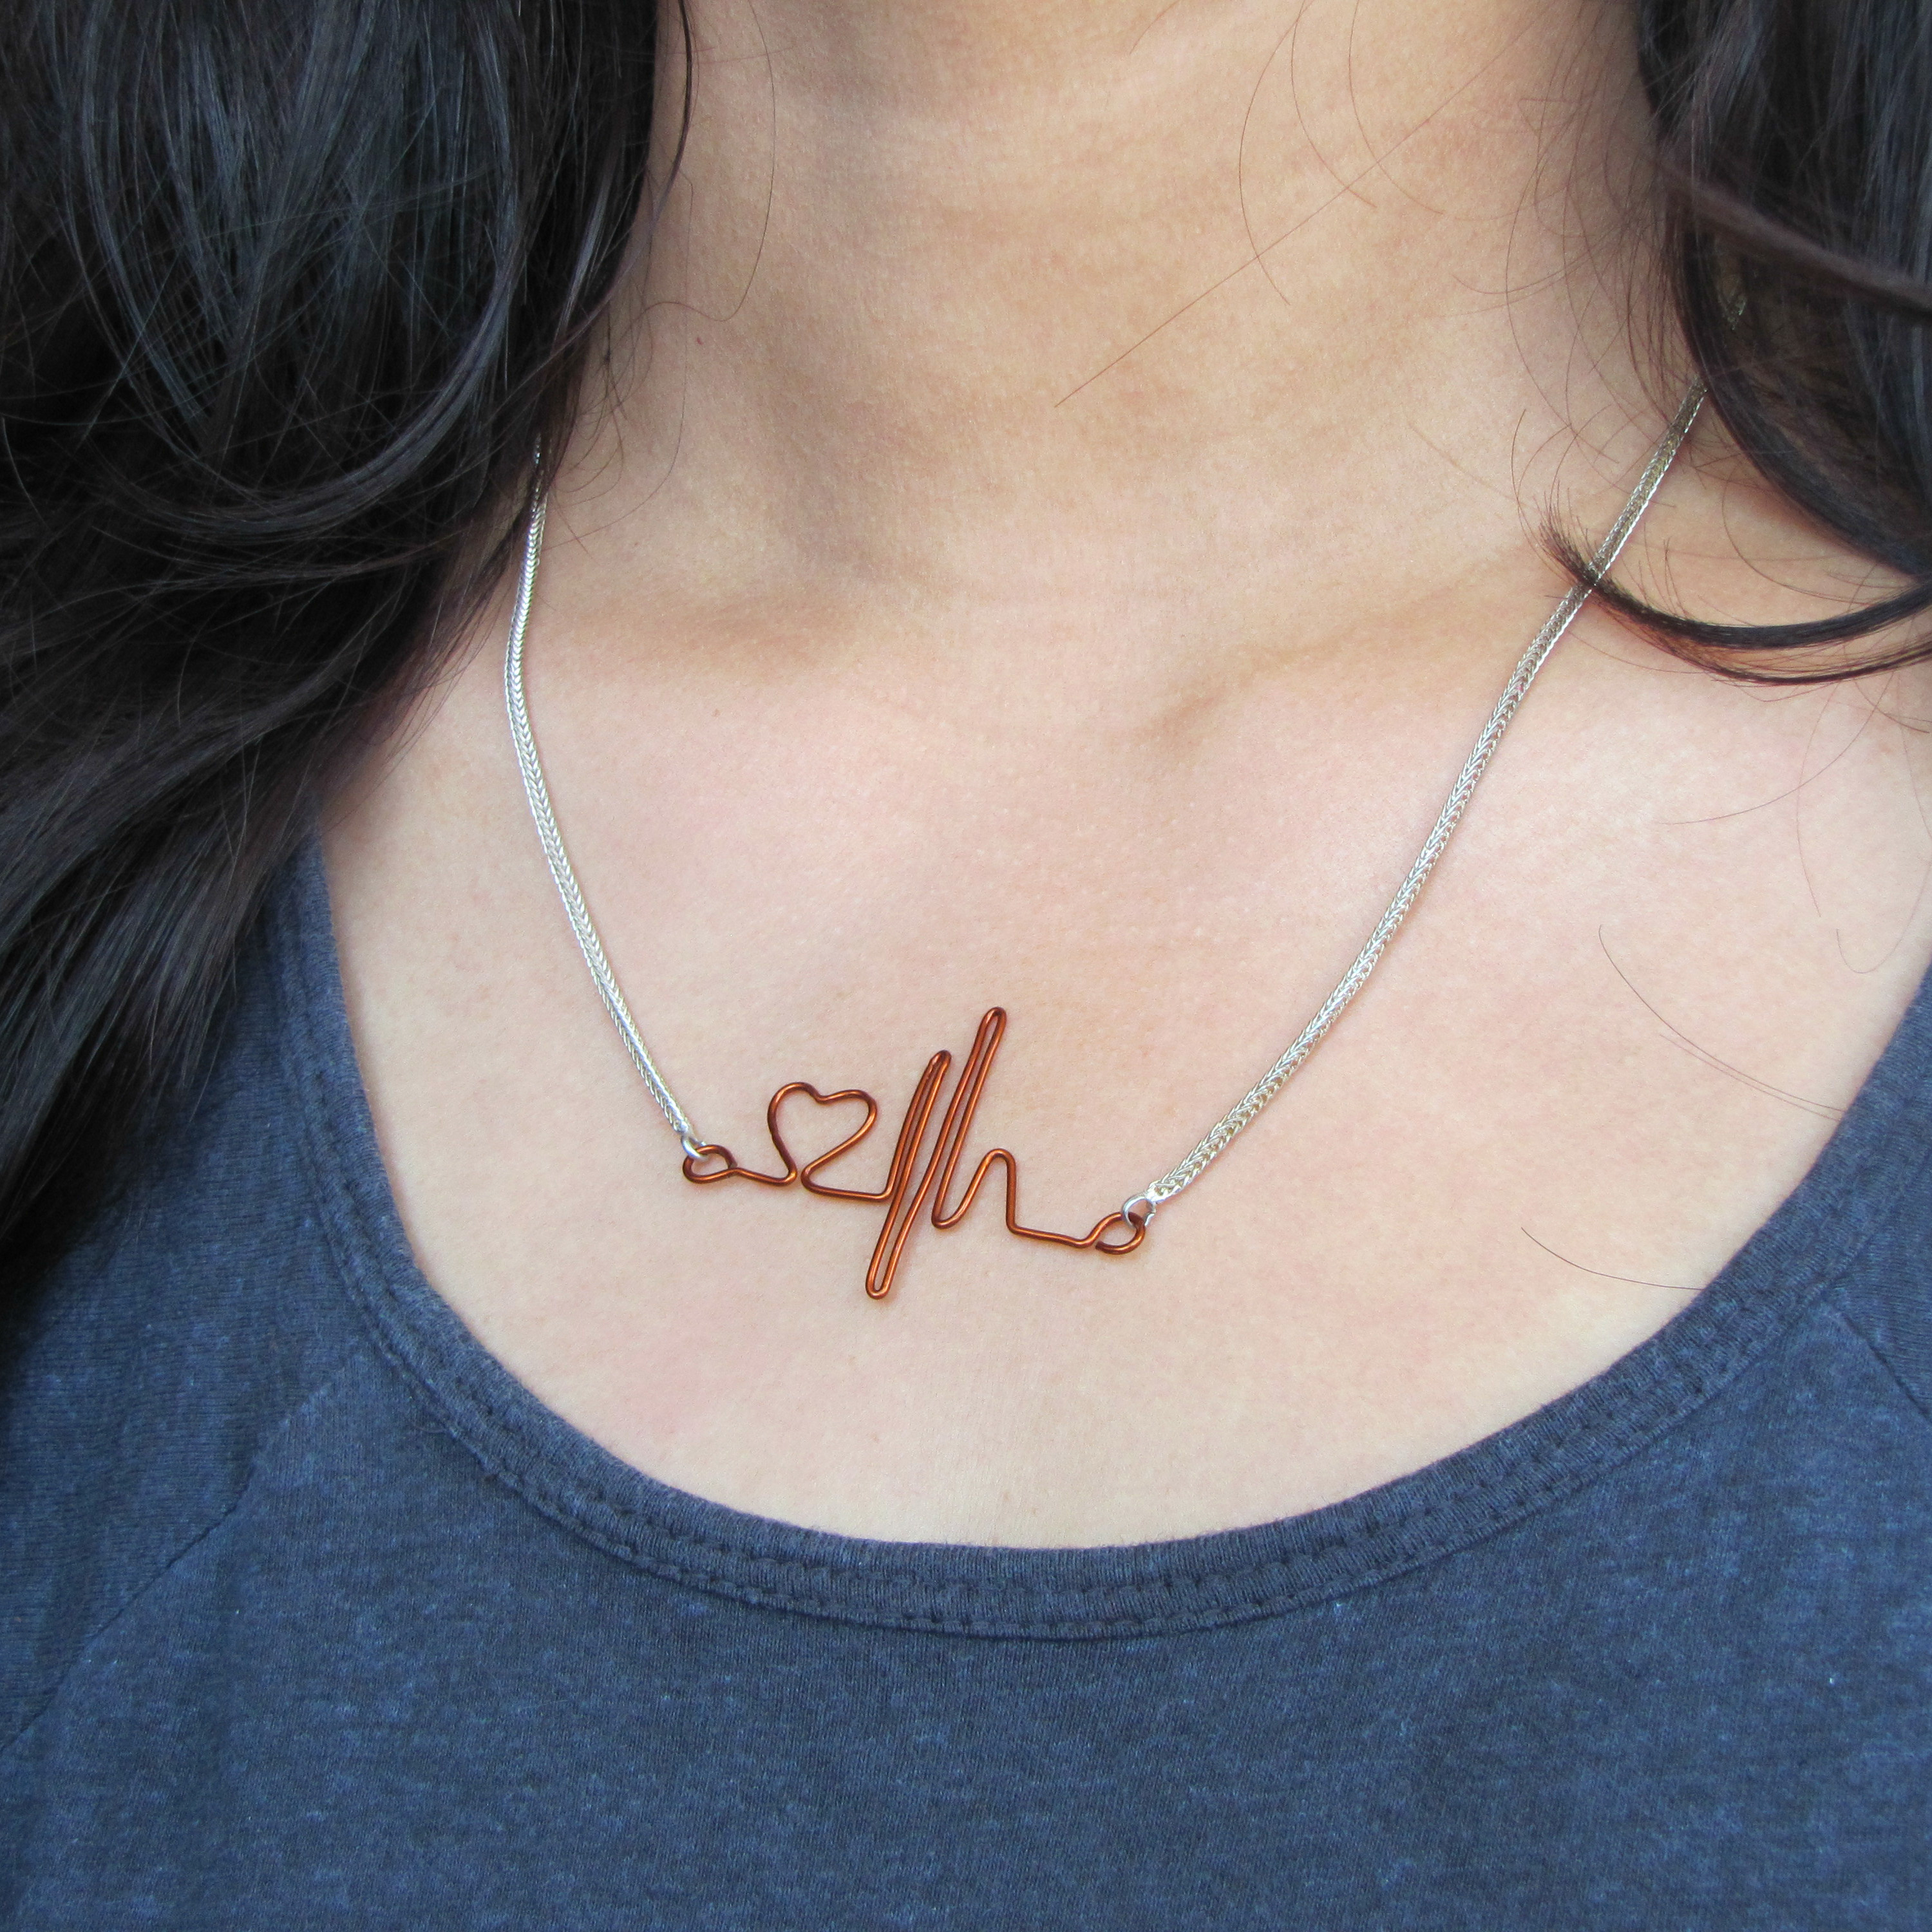 Picture of Heartbeat Necklace for Your Valentine